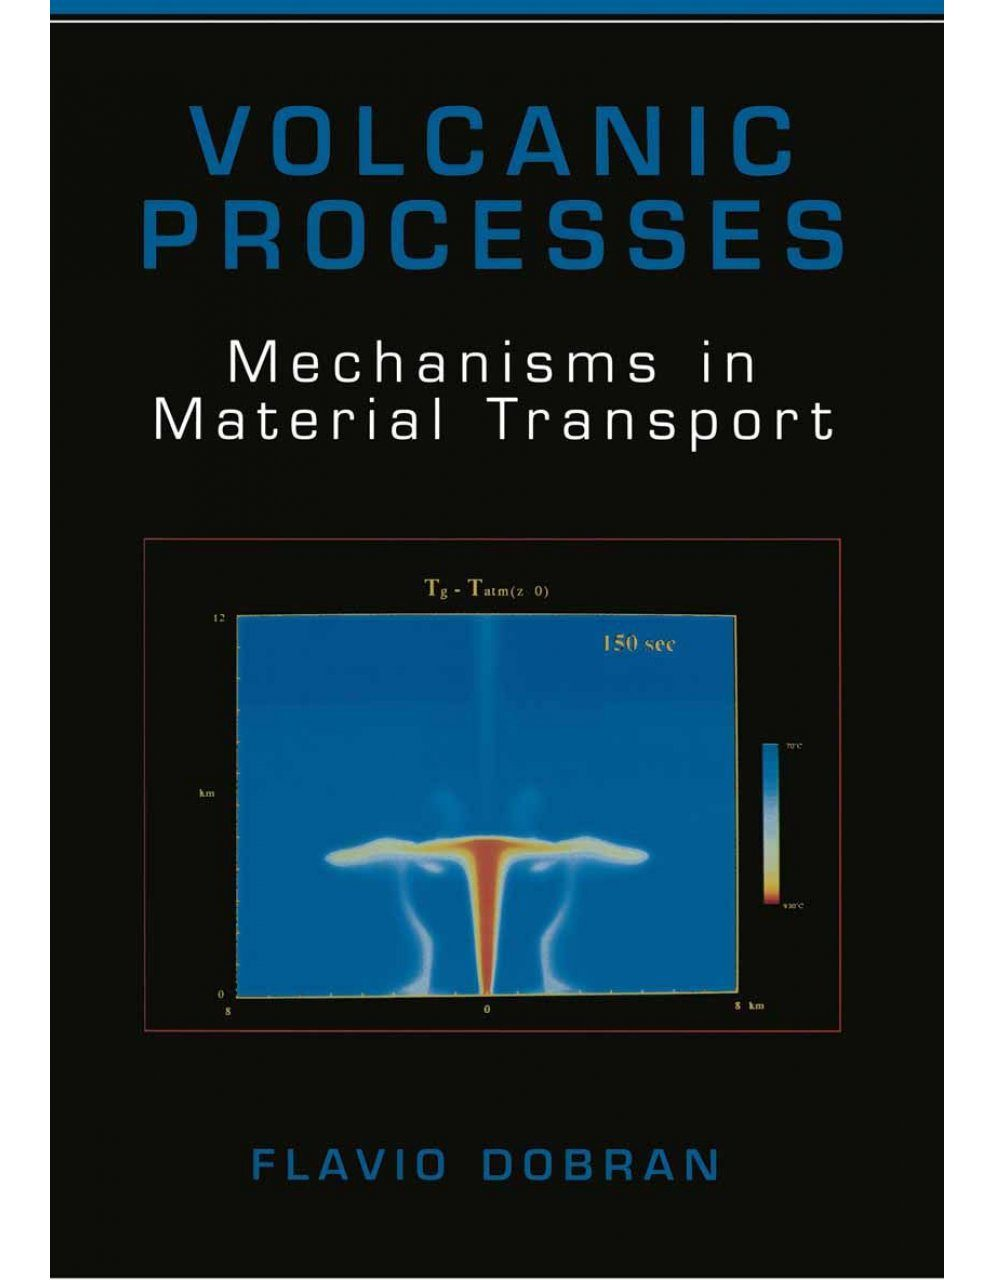 Volcanic Processes: Mechanisms in Material Transport